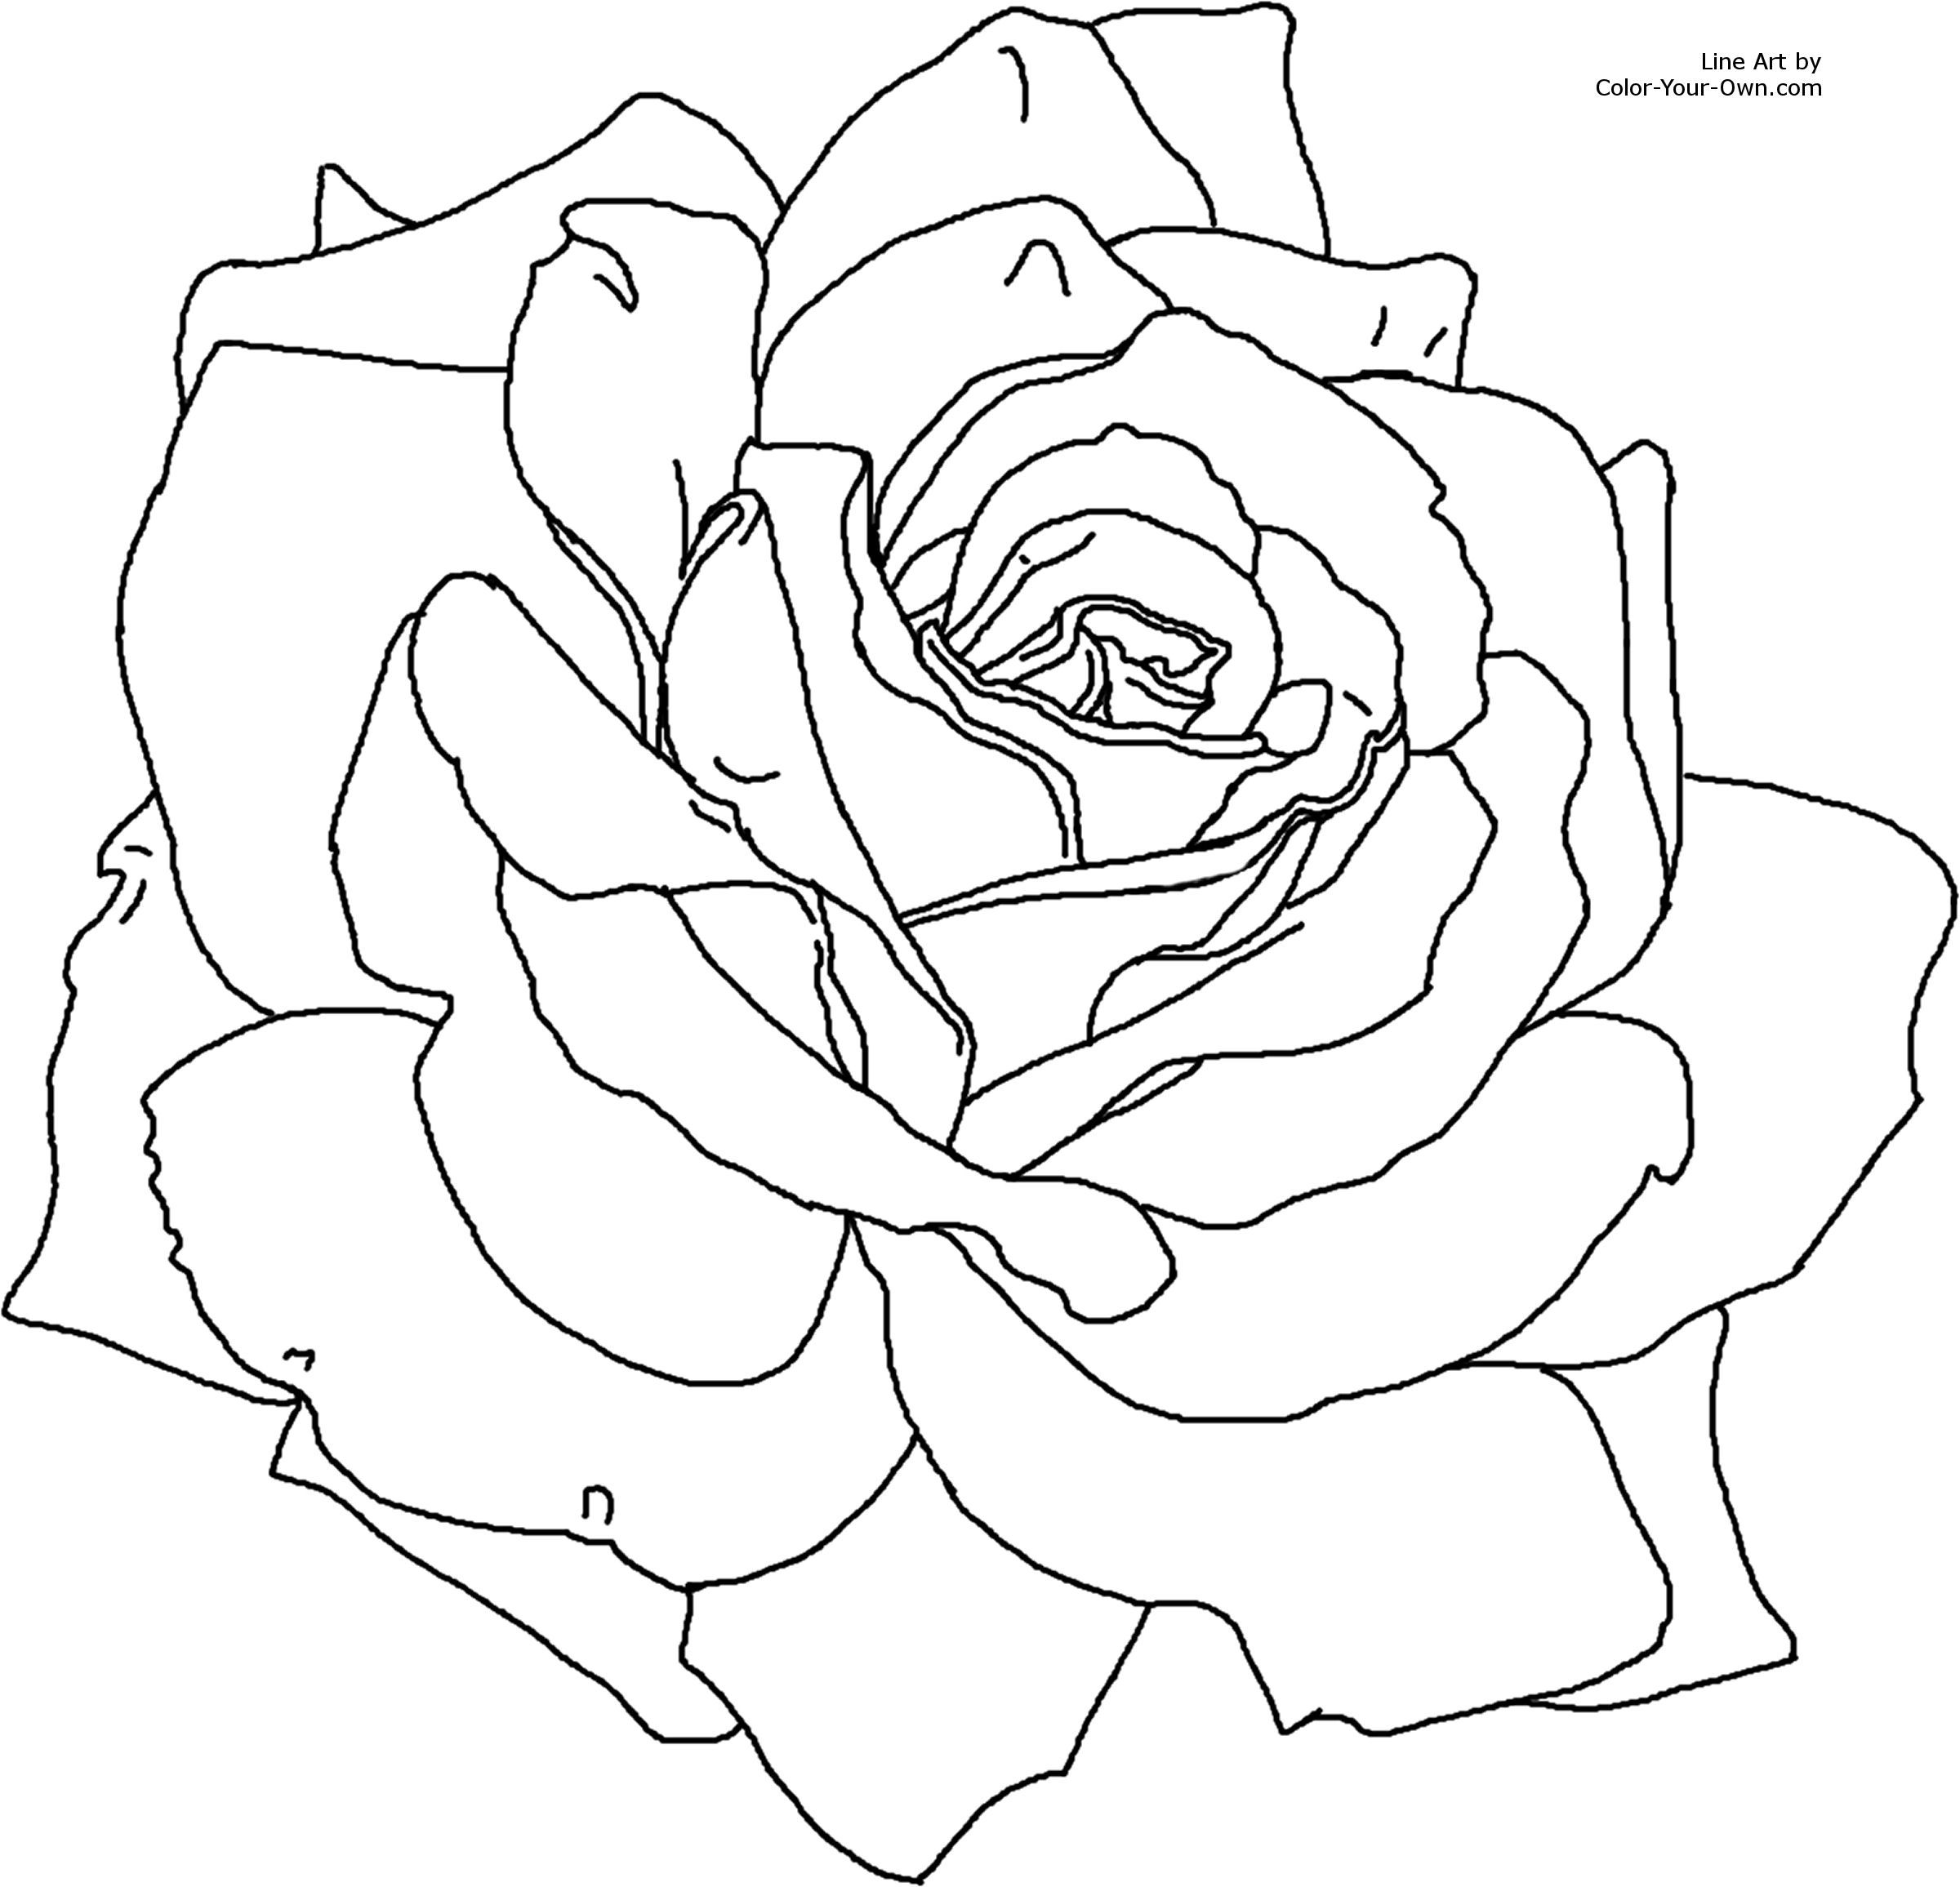 flower Page Printable Coloring Sheets | For the 8.5 x 11 printable ...